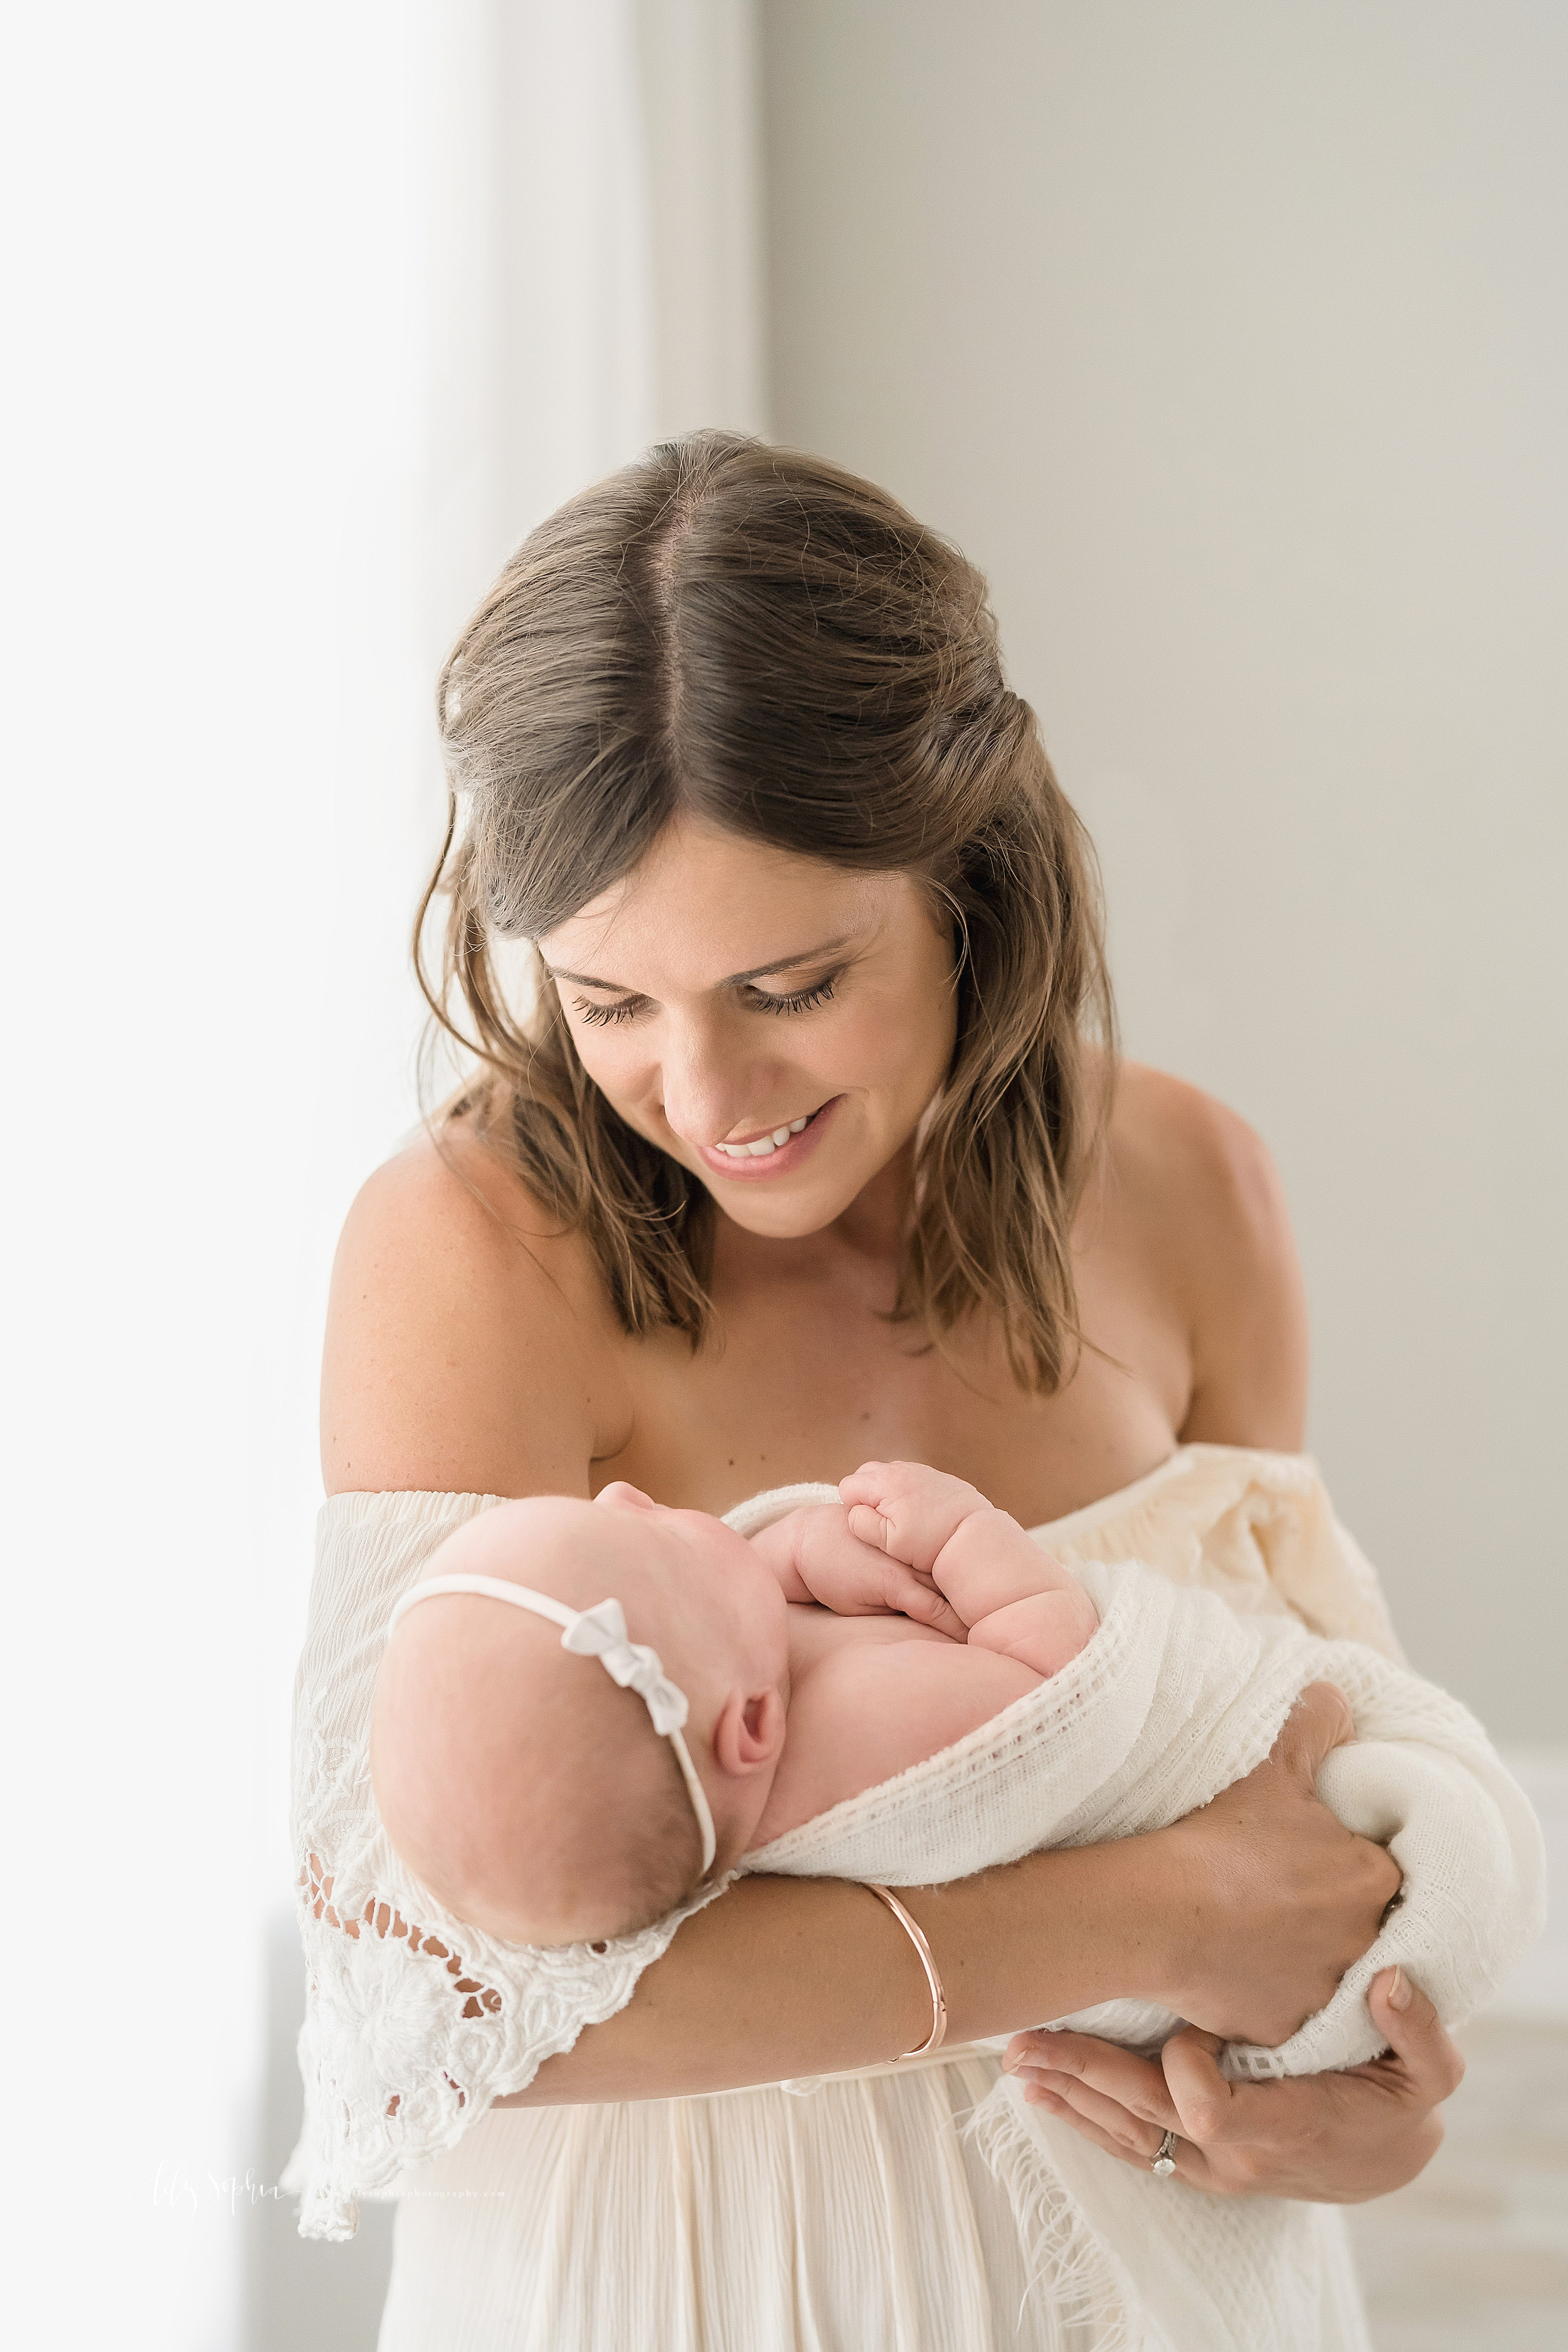 Newborn photo of a smiling and proud mother who is wearing an off the shoulder cream button downed gown holding her newborn daughter in her arms and proudly admiring her as she stands in natural light in an Atlanta studio.